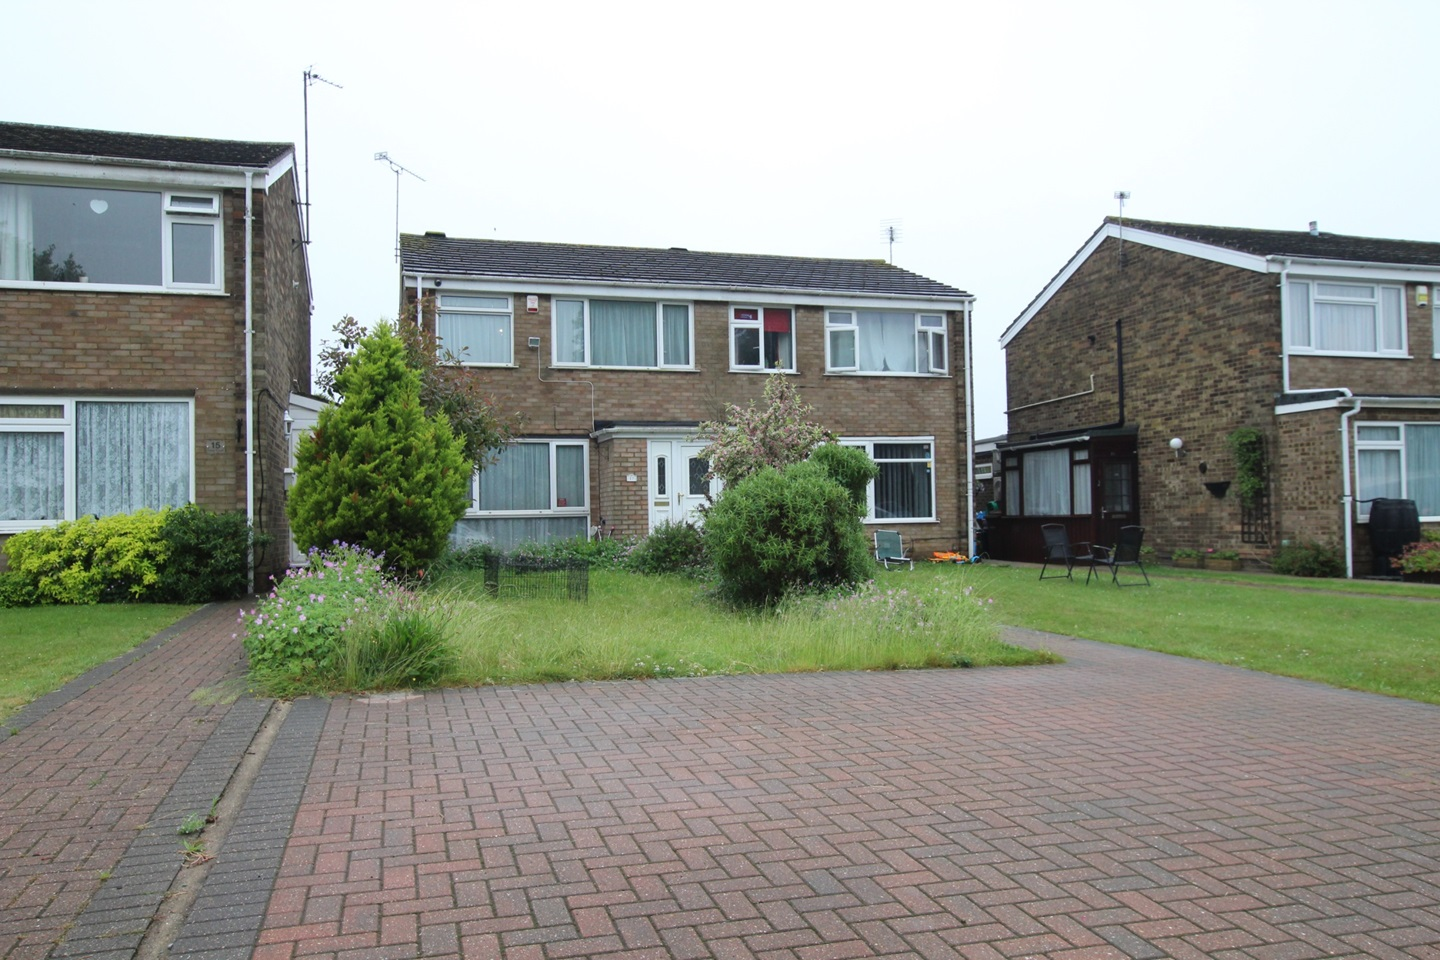 3 Bed Semi-Detached House, Lime Court, ME8